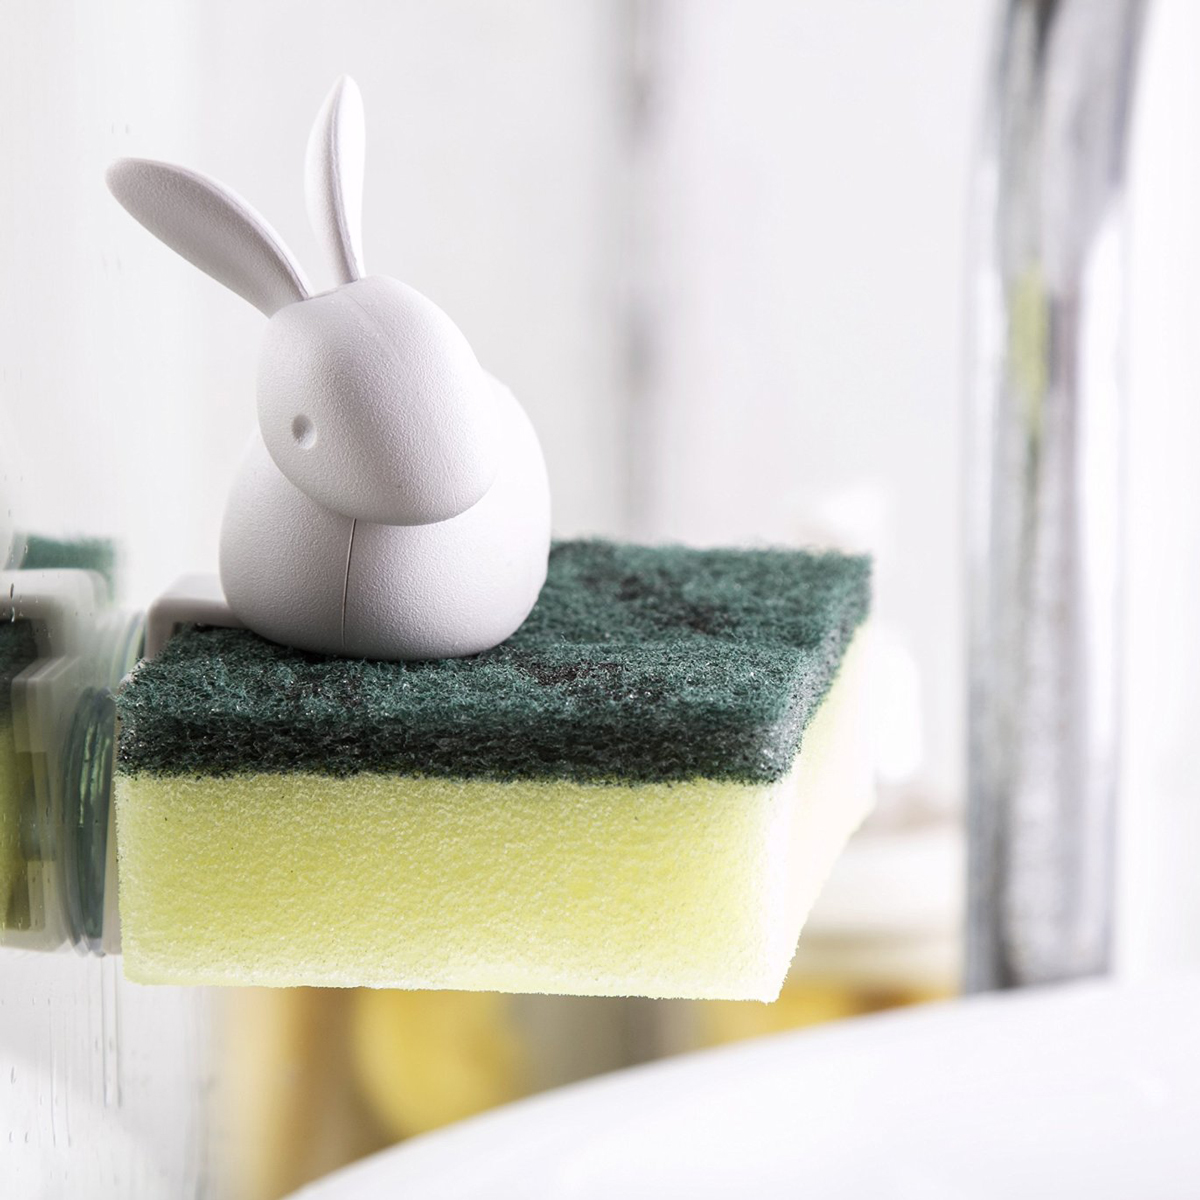 Bunny Rabbit Sponge Holder